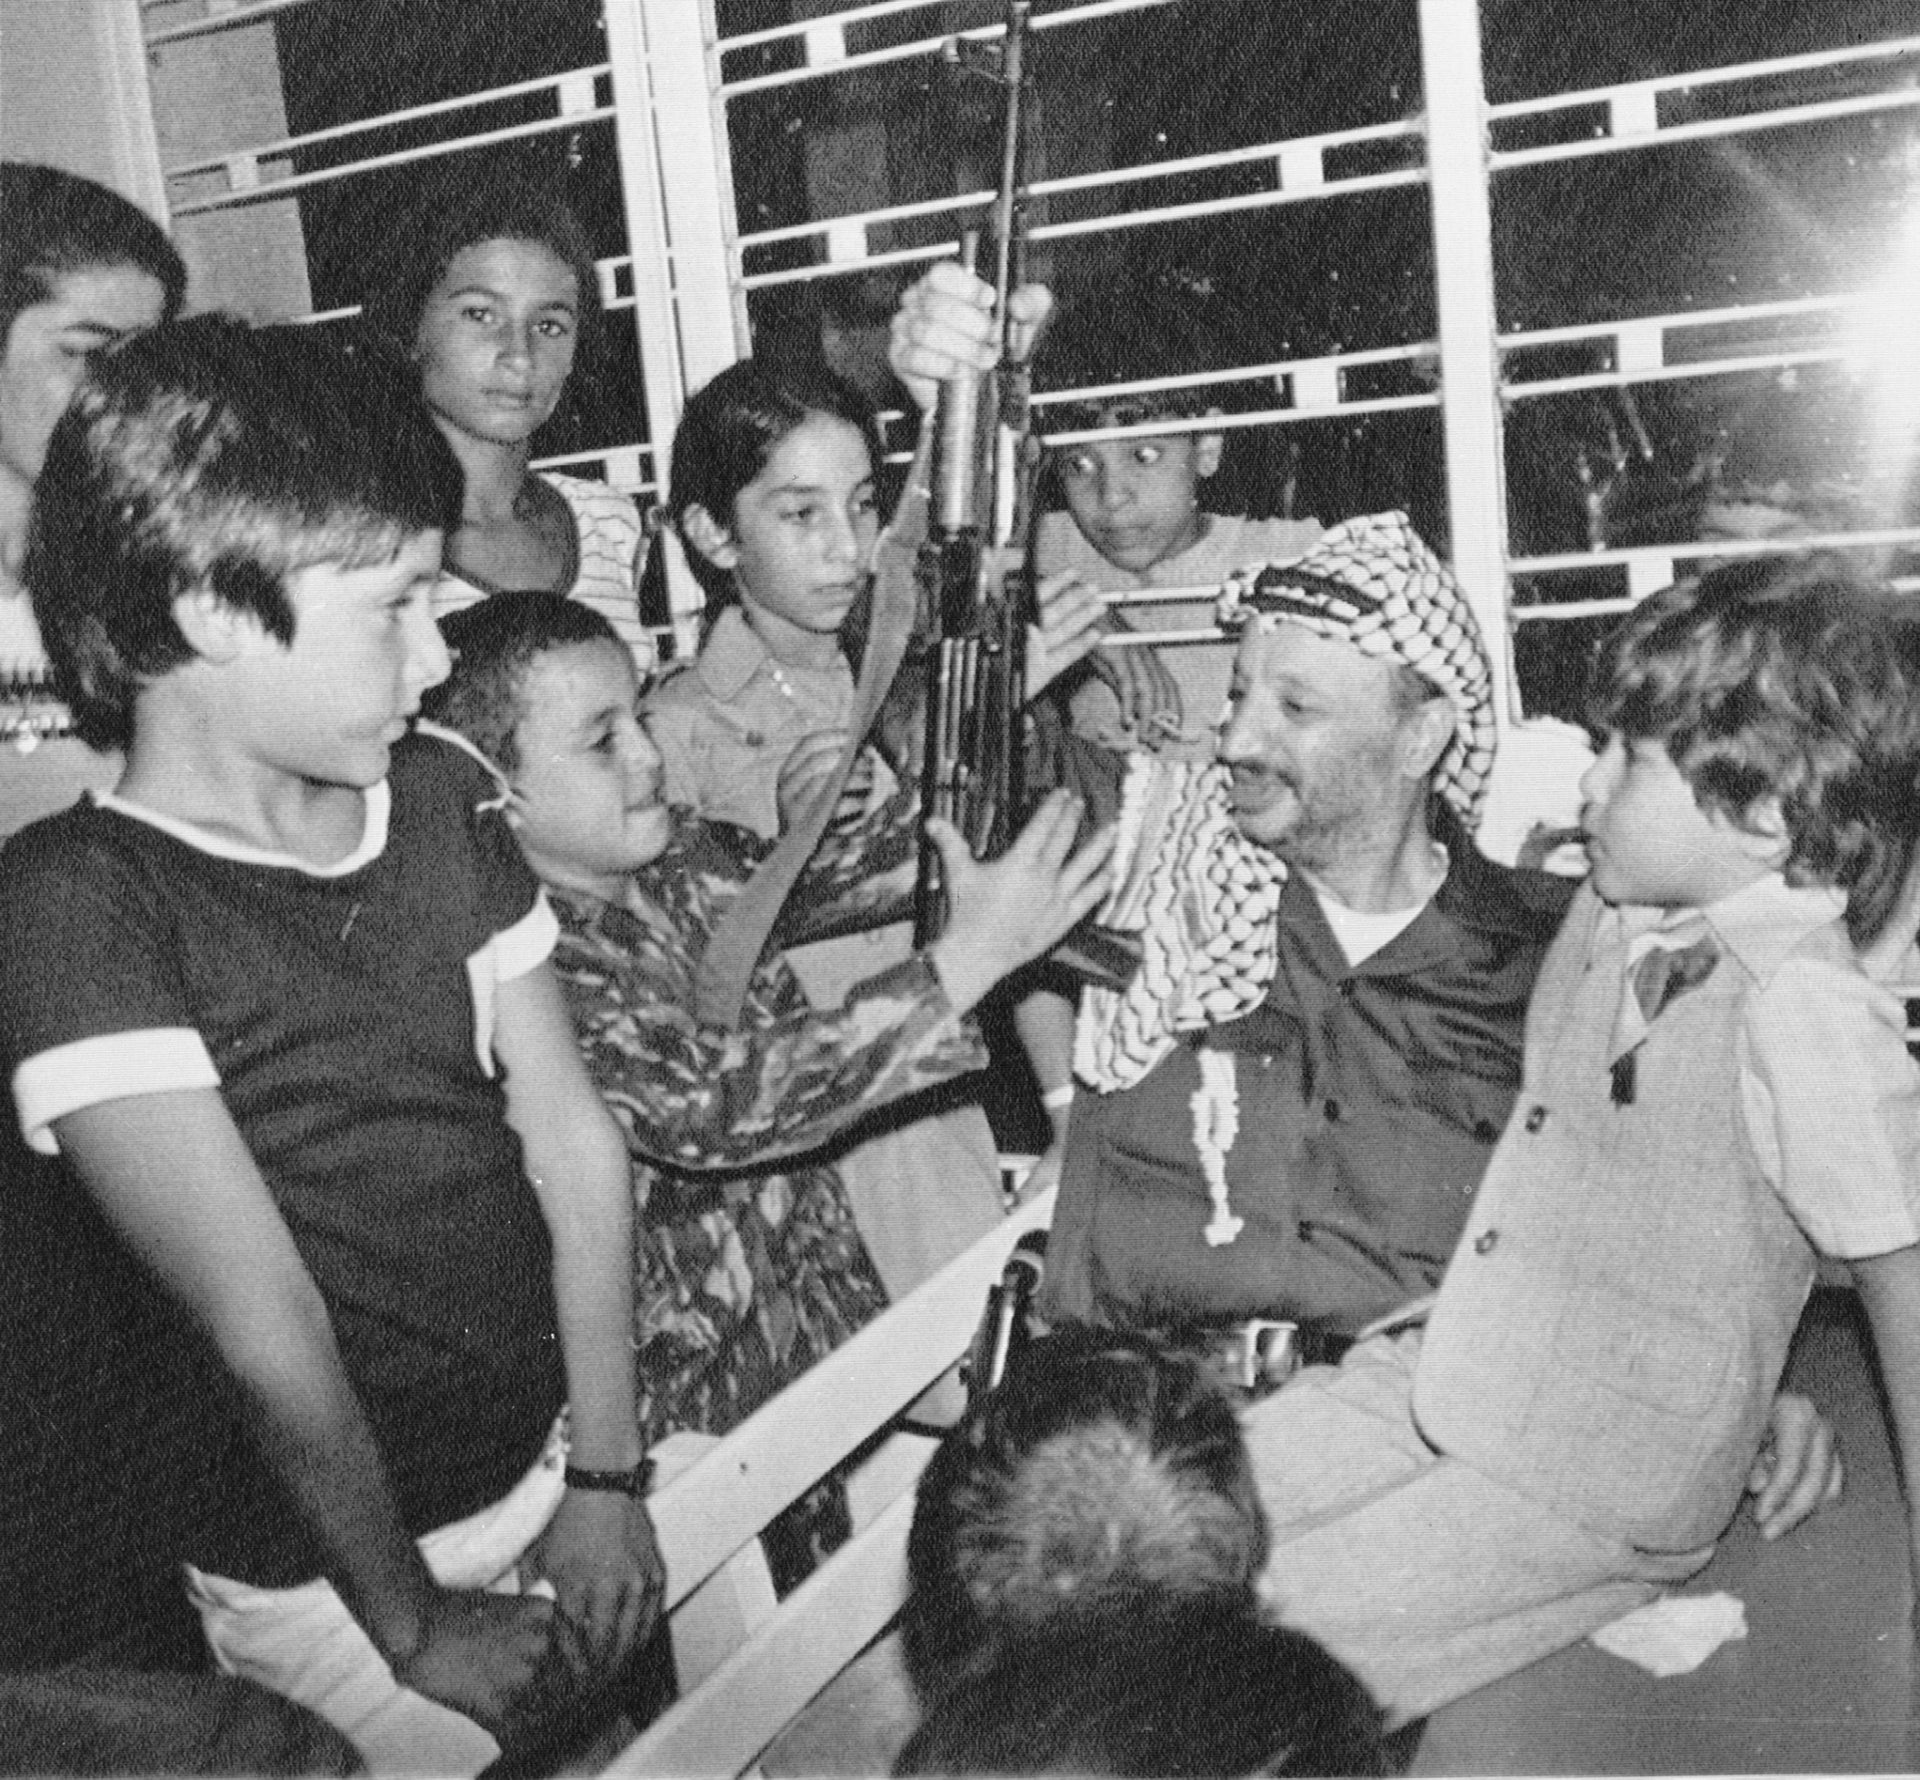 Then-PLO leader Yasser Arafat sitting with a group of refugees in a camp outside Beirut, Lebanon, August 1977.